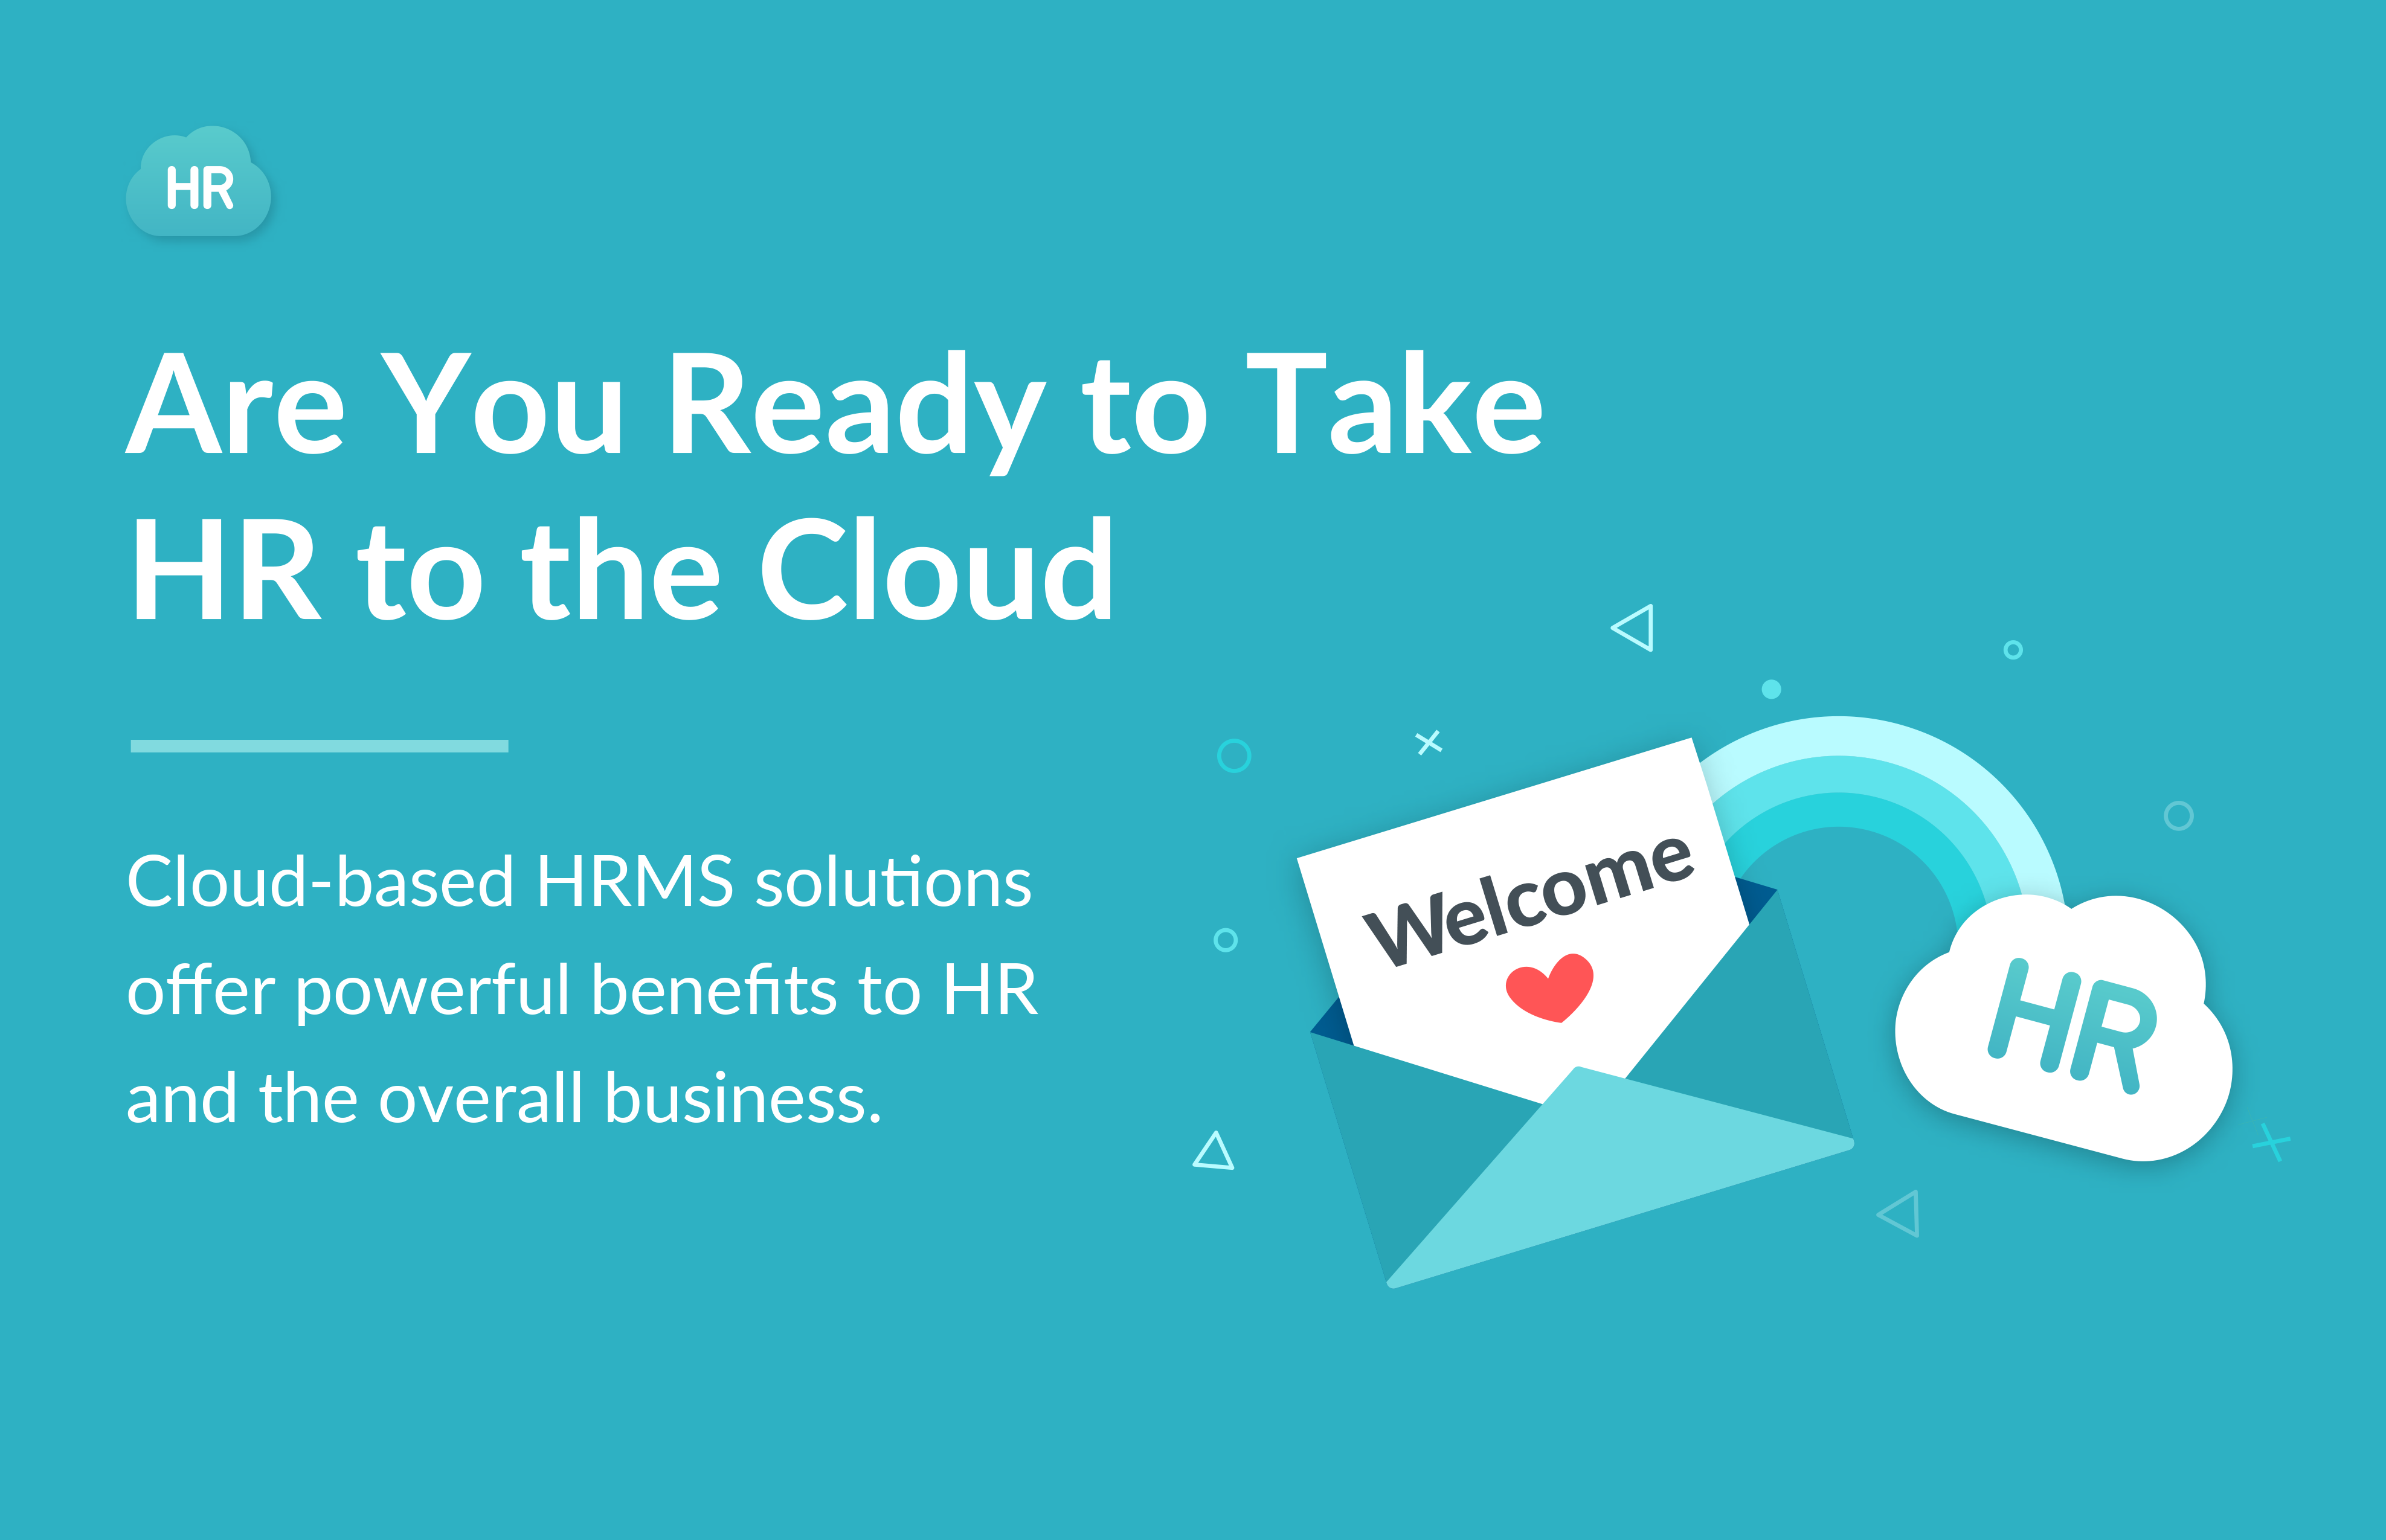 Are You Ready to Take HR to the Cloud